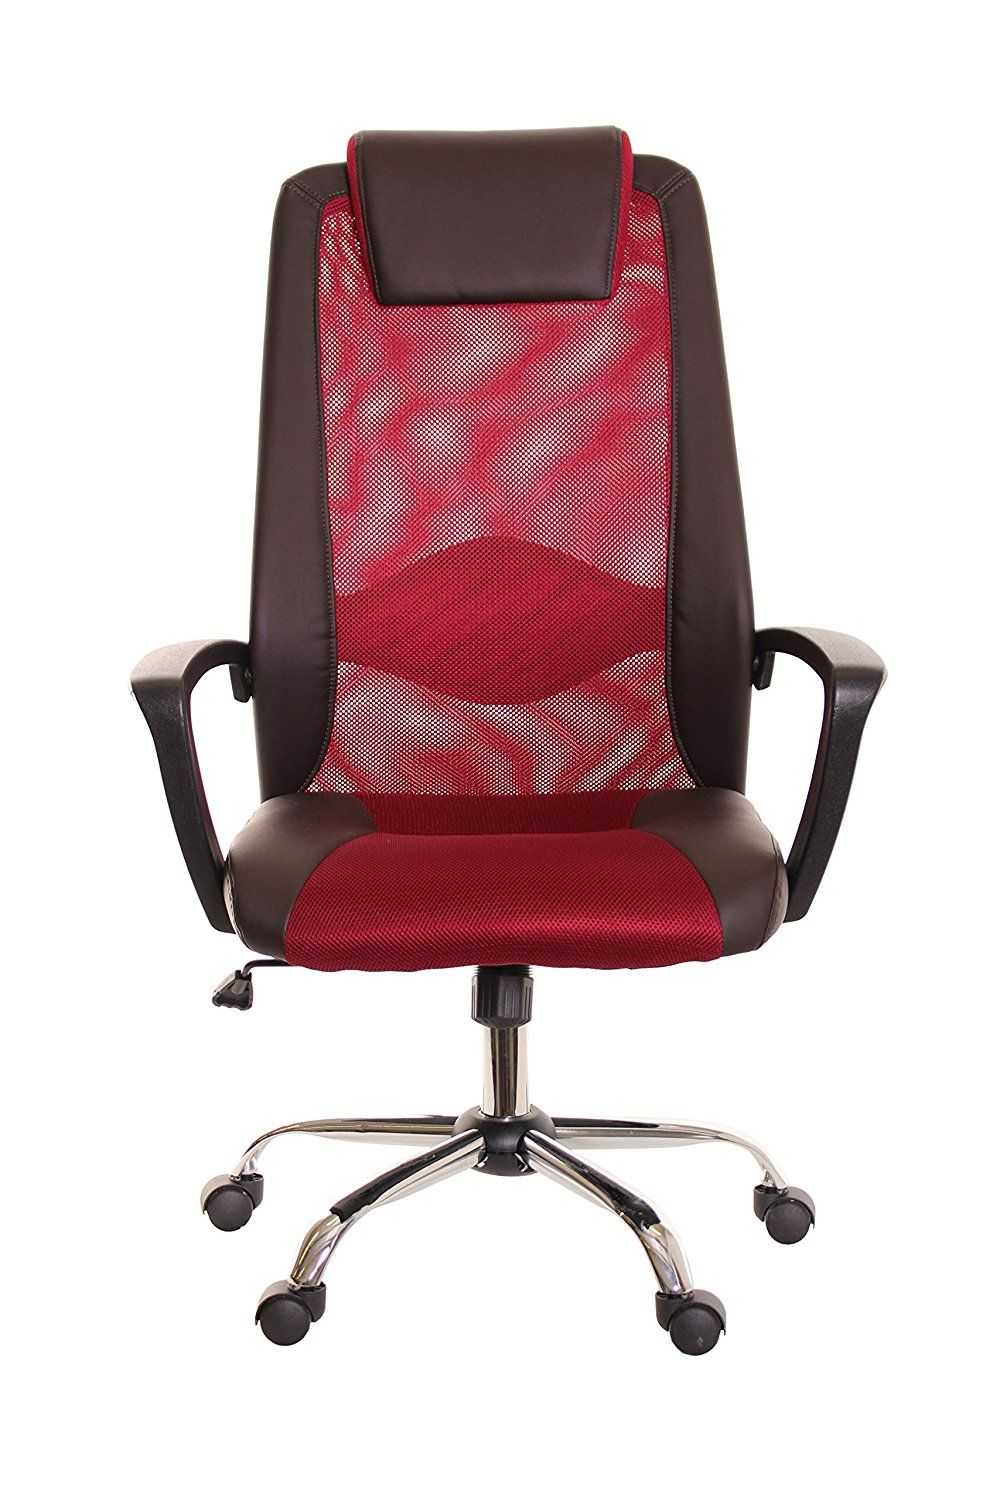 most comfortable drafting chair office pinterest drafting chair